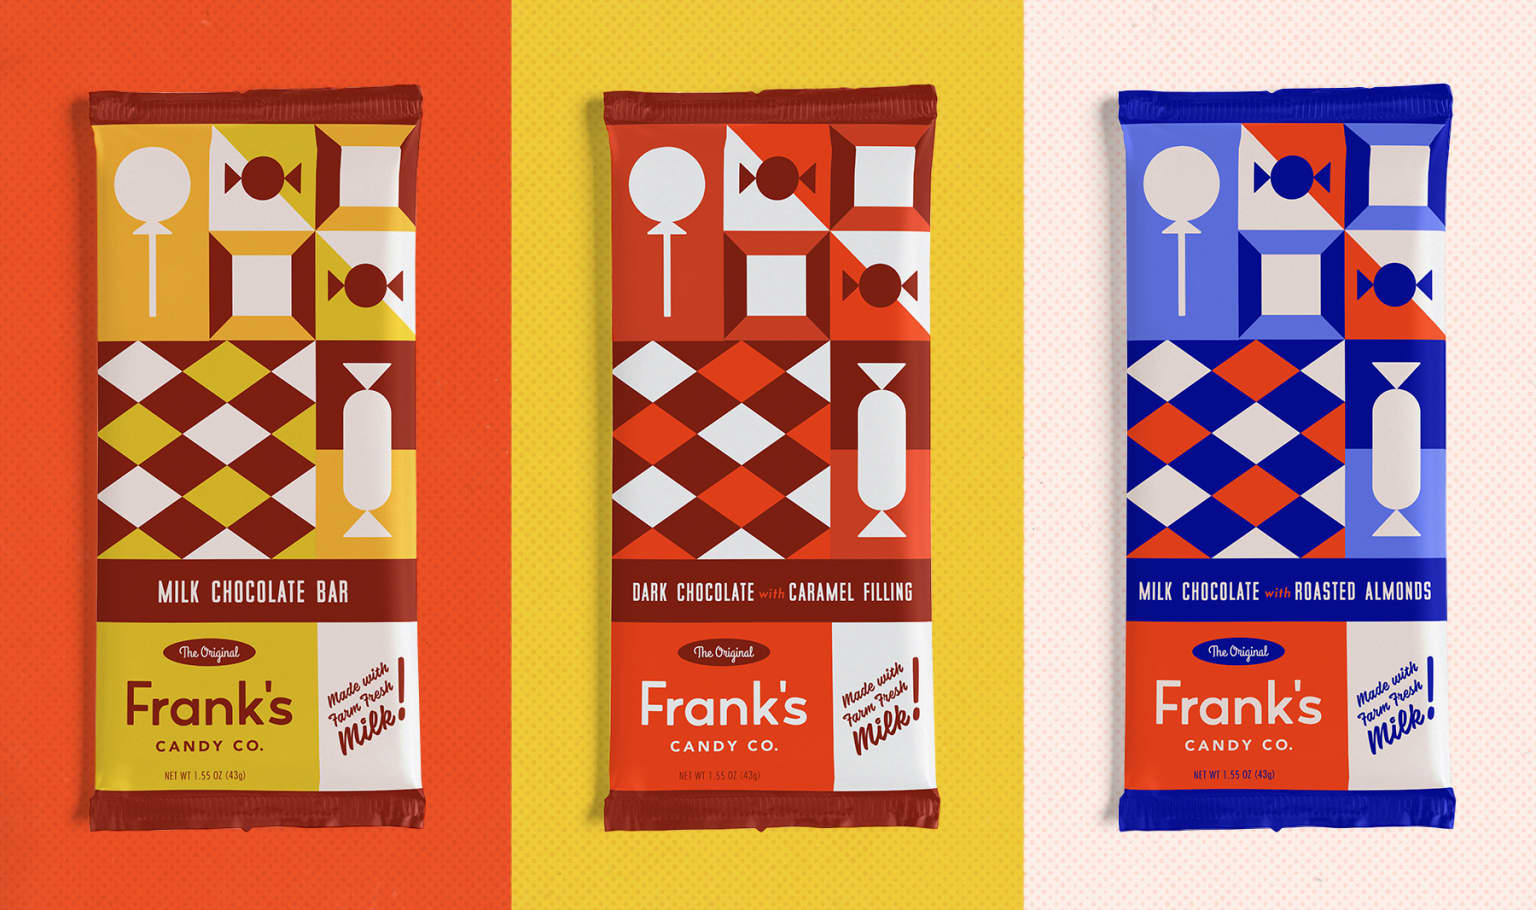 Frank's Candy Co.